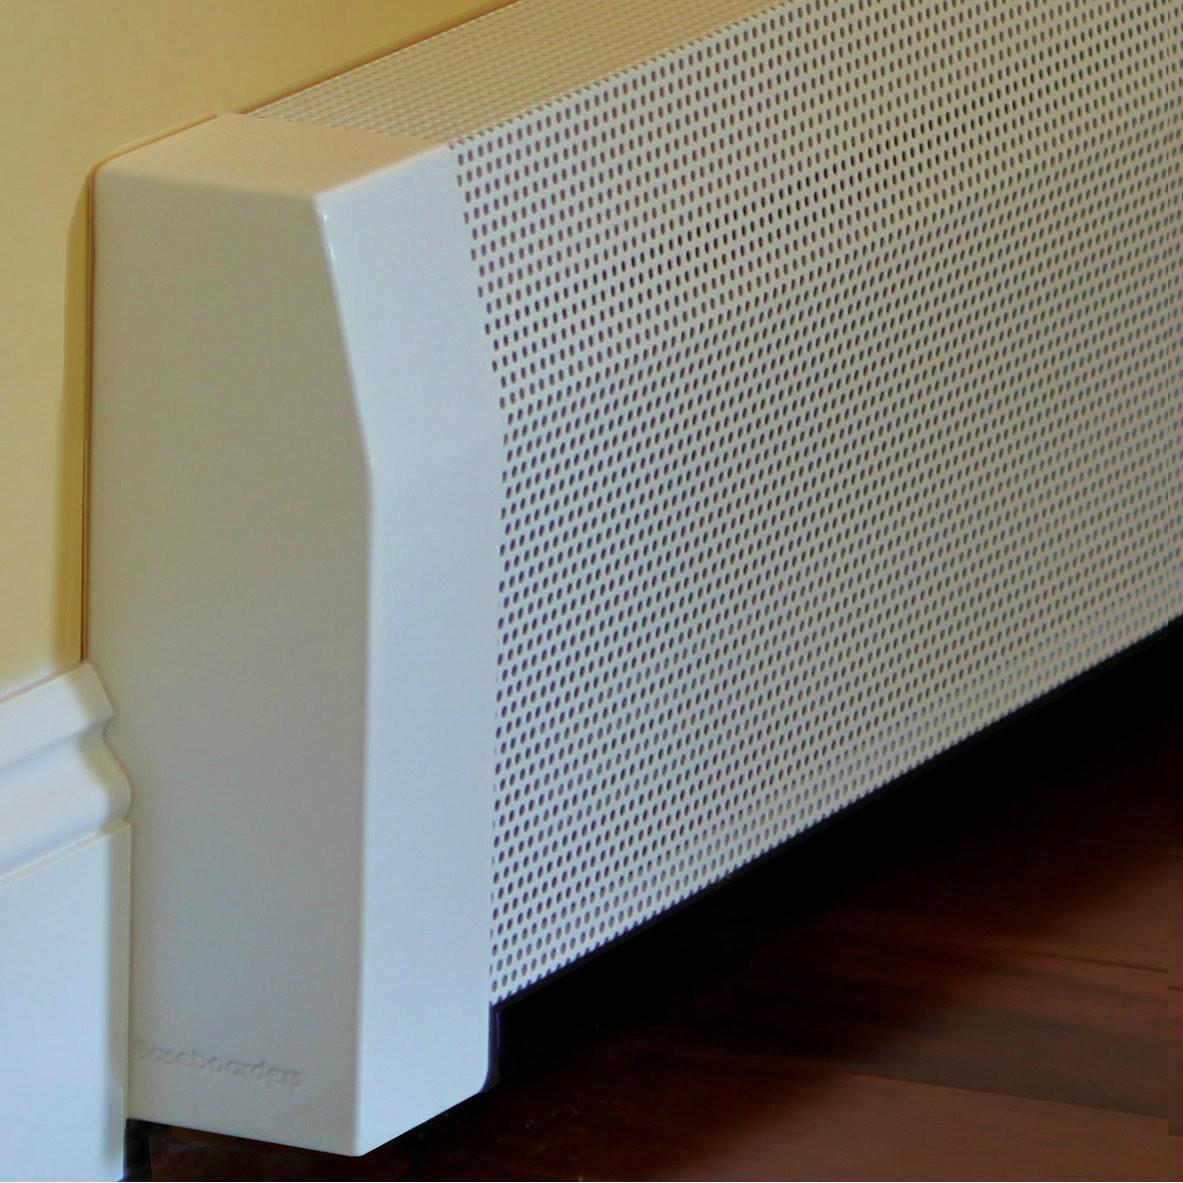 tall baseboard heater cover. Black Bedroom Furniture Sets. Home Design Ideas